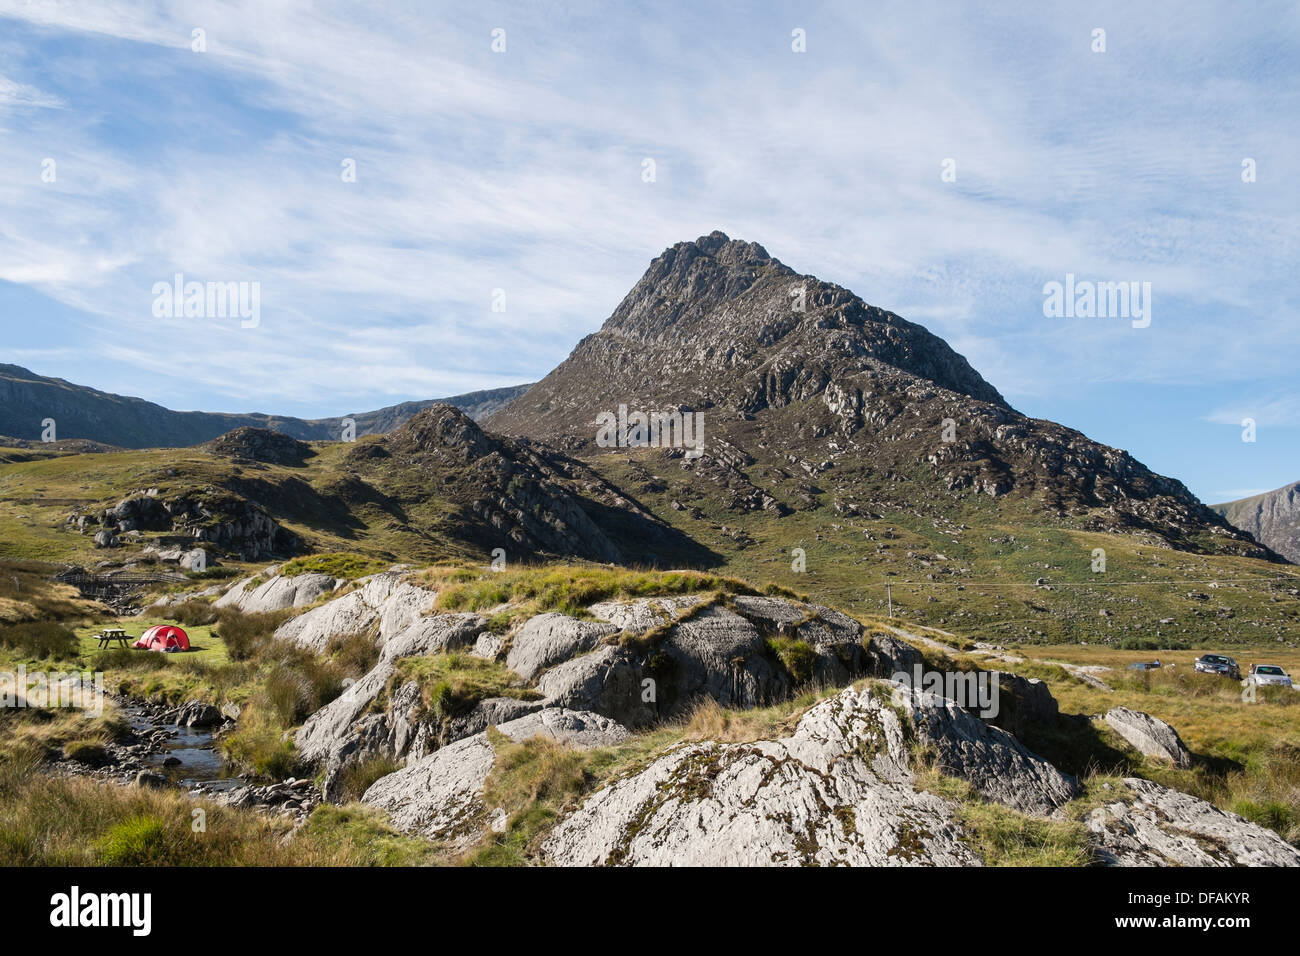 Tent c&ed by a stream on Willieu0027s Farm c&site below Mount Tryfan in Snowdonia National Park Ogwen Valley North Wales UK & Tent camped by a stream on Willieu0027s Farm campsite below Mount ...